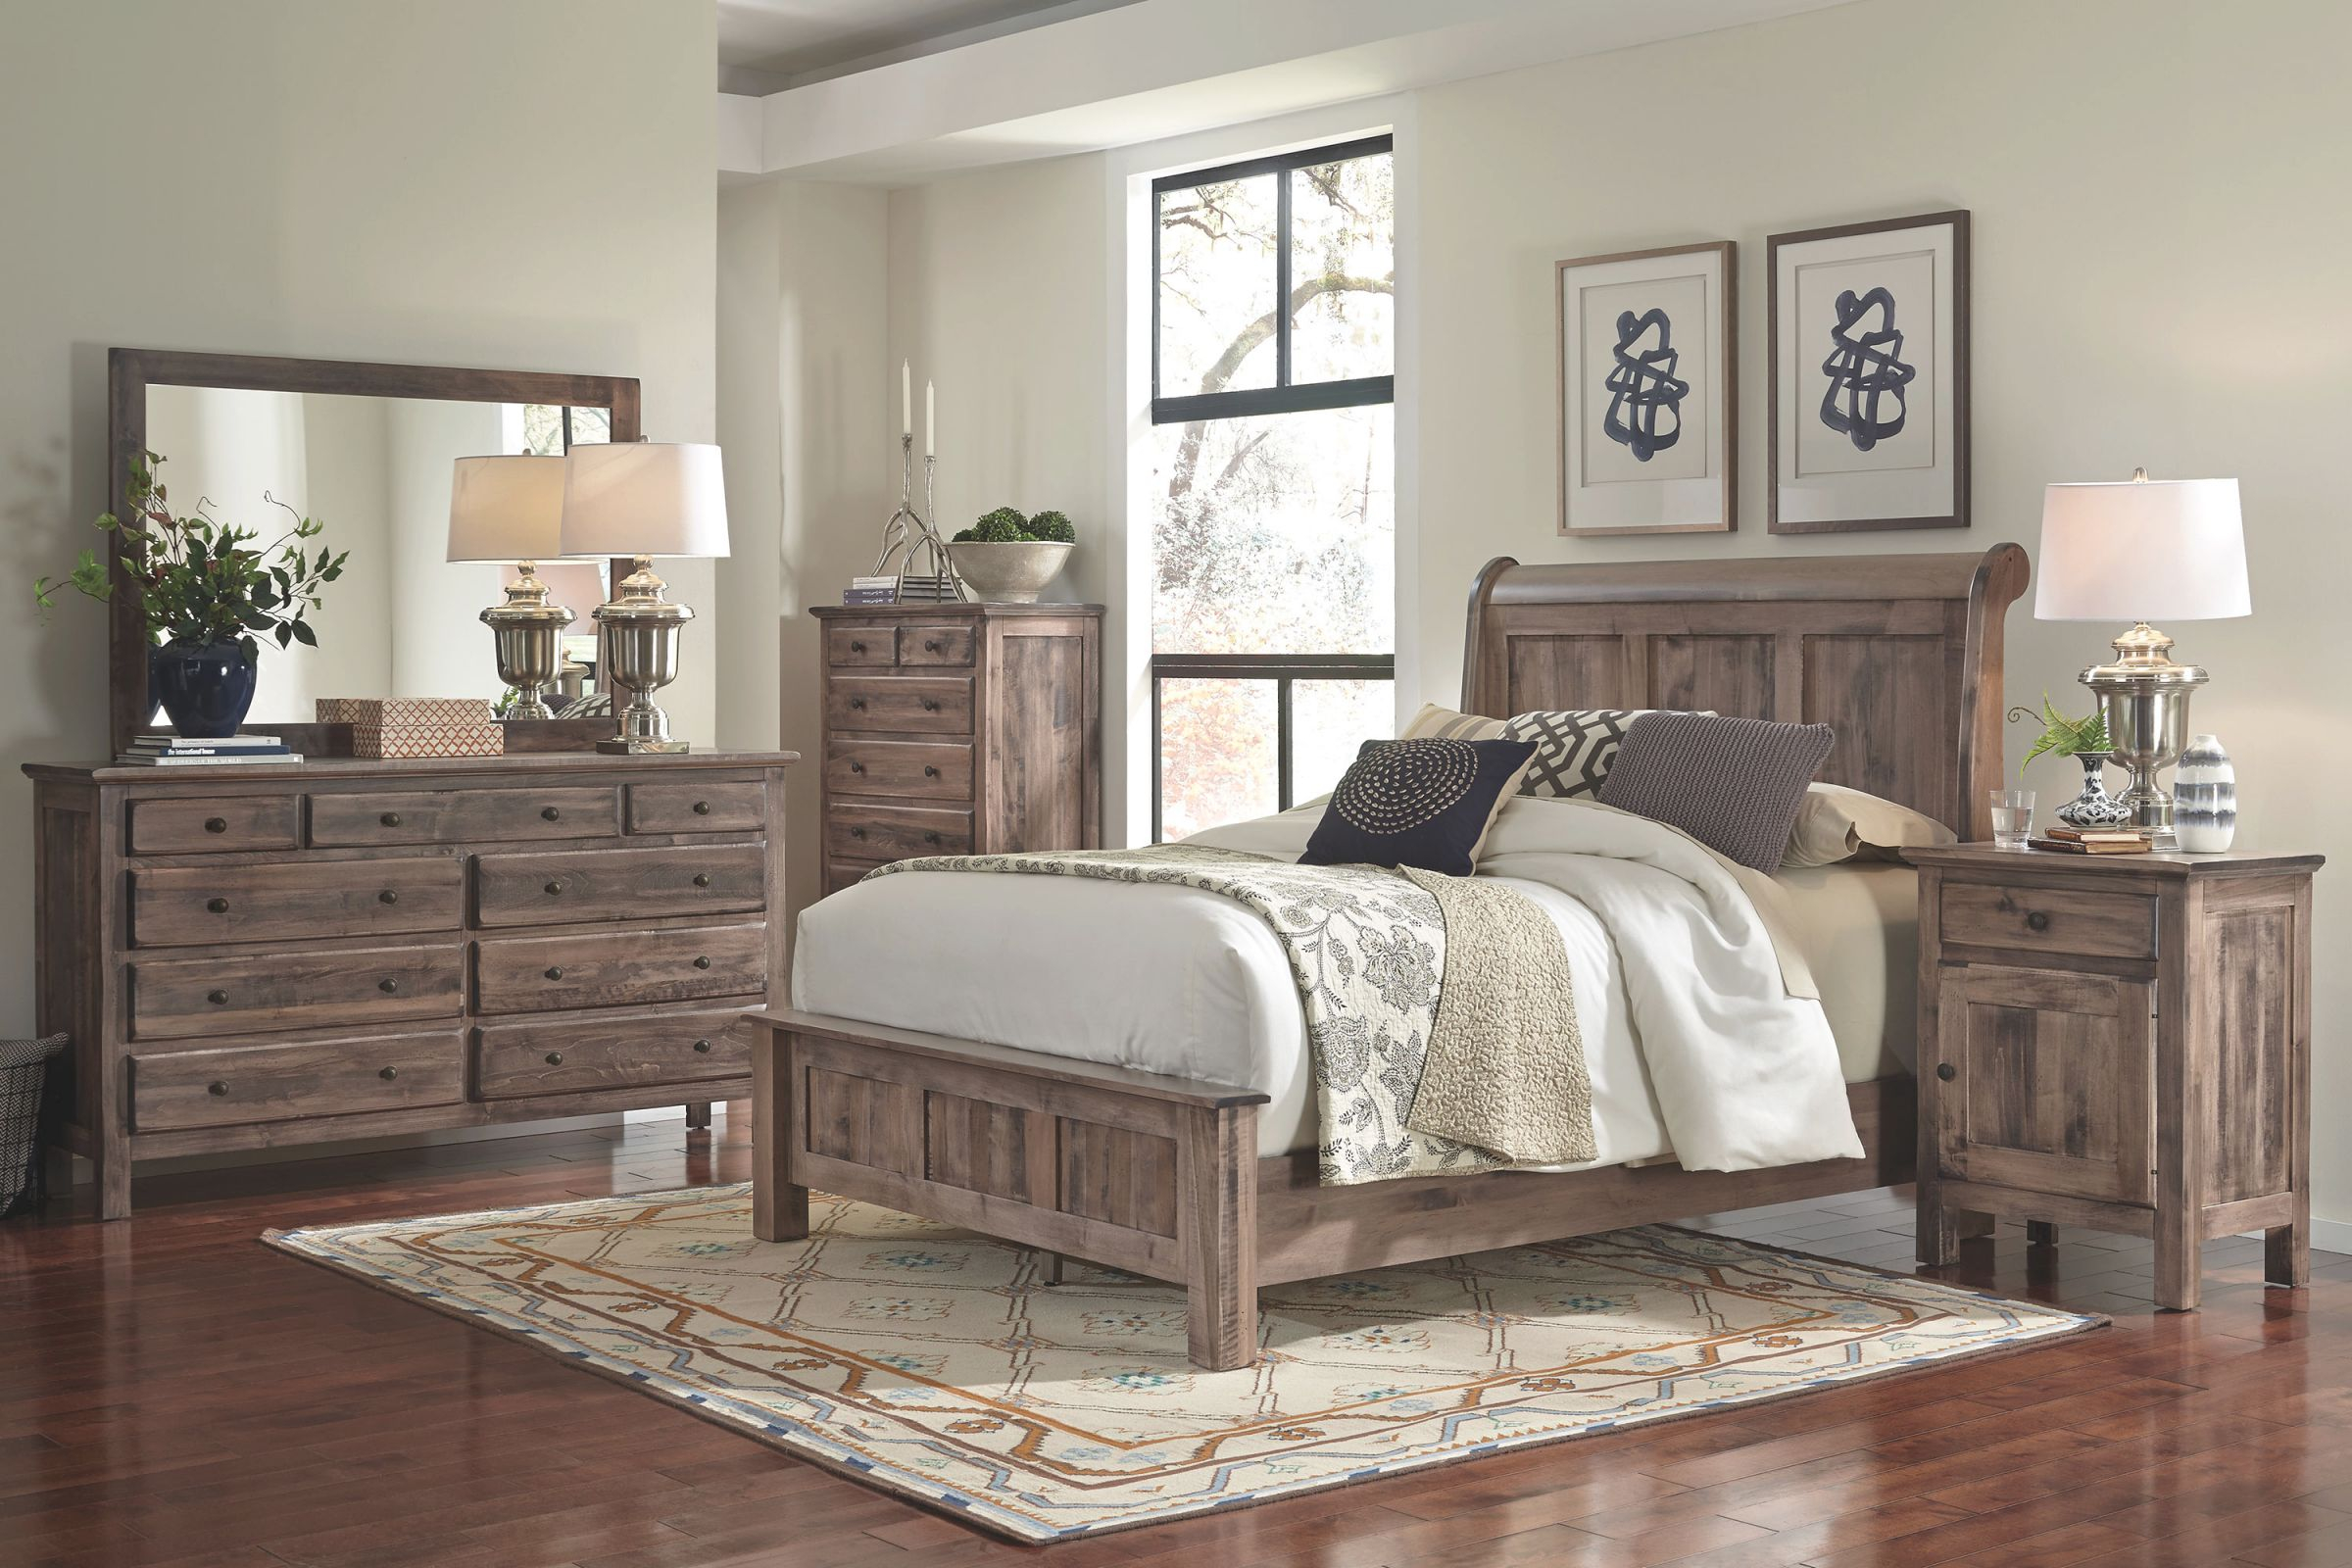 Lewiston 4-Piece Queen Bedroom Set throughout Awesome Cheap Queen Bedroom Furniture Sets